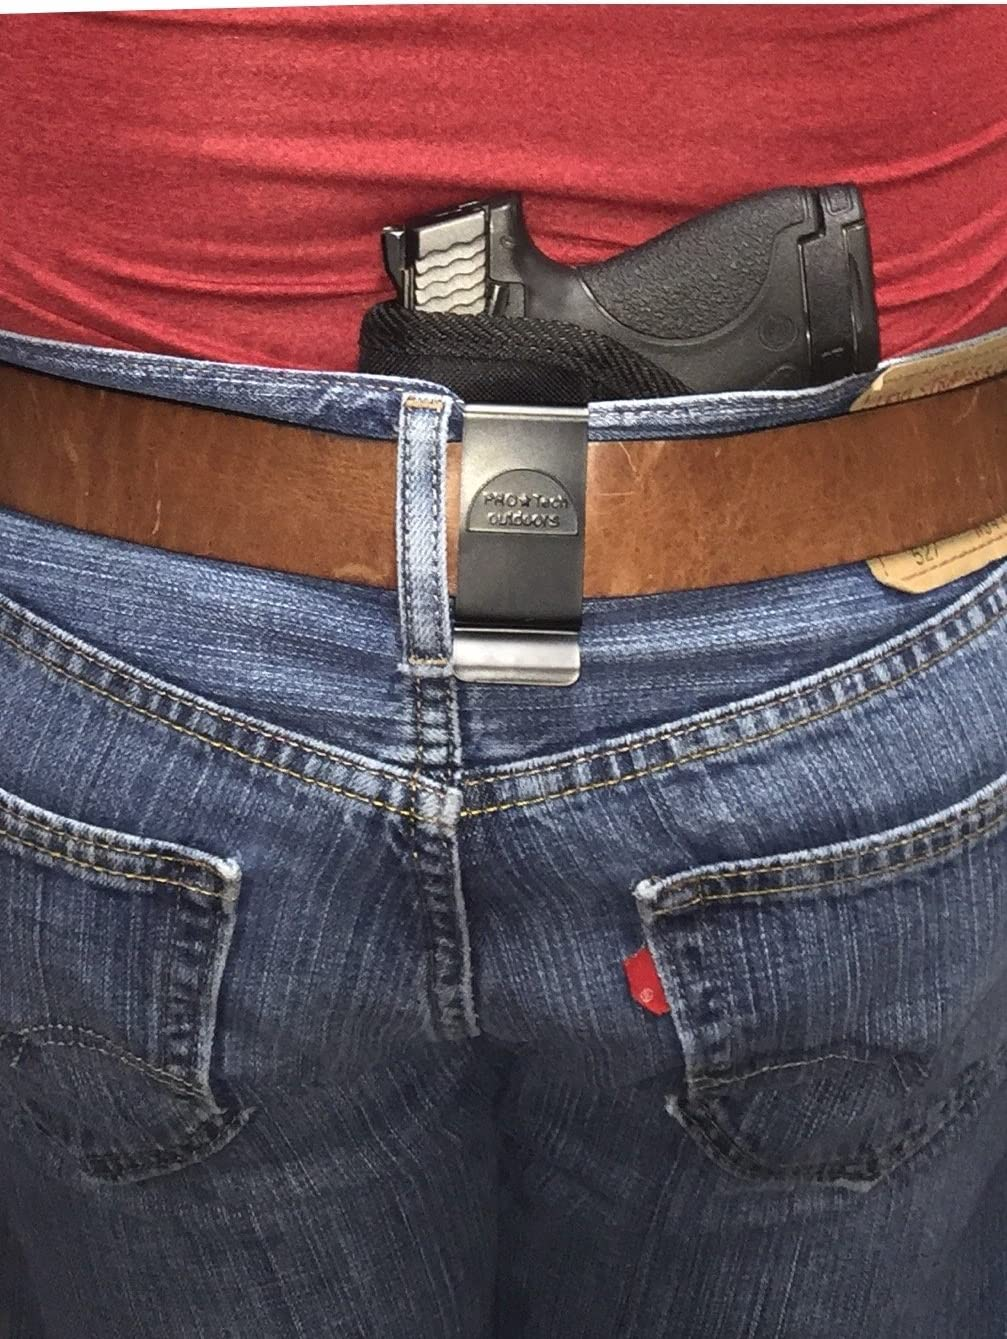 Pro-Tech Outdoors in Over item handling ☆ The Pants Concealed Gun Raven Holster for M Limited time trial price